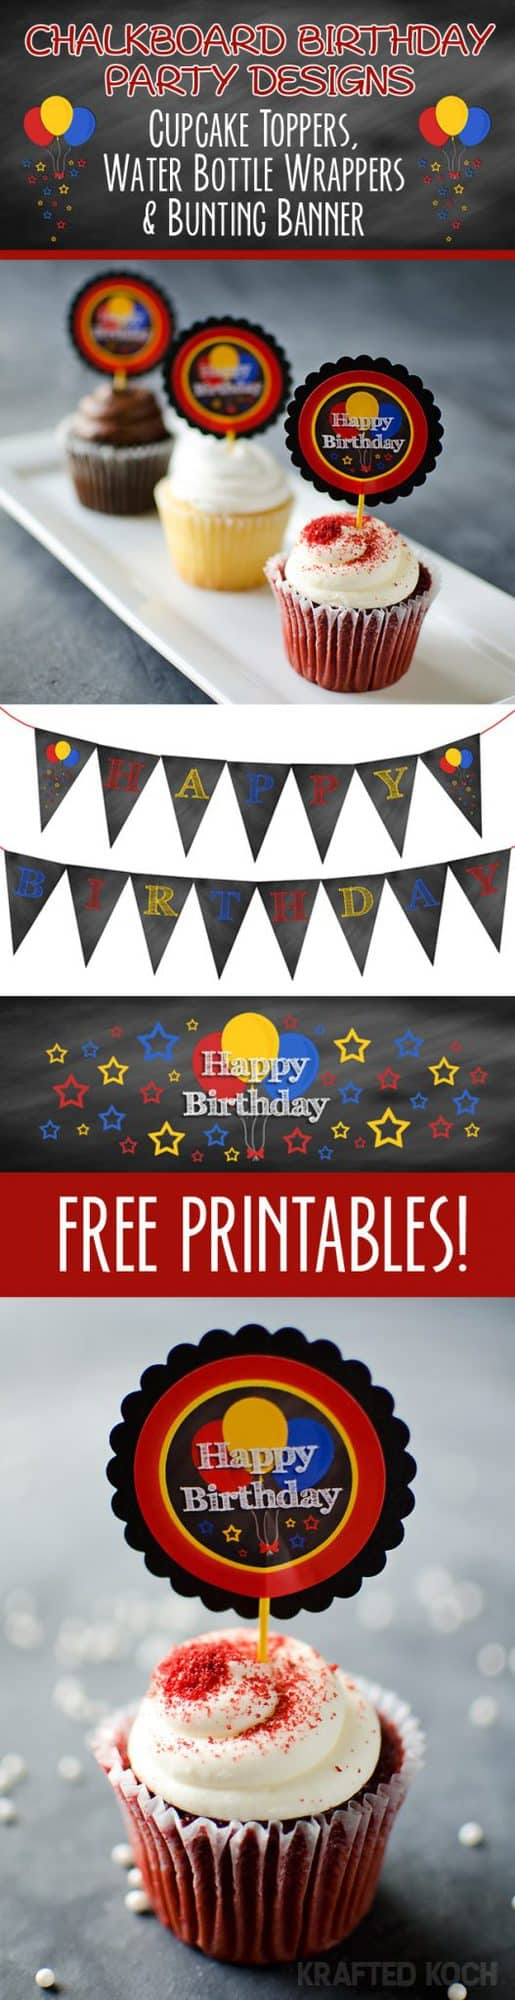 cupcake toppers - chalkboard birthday party free printables designs www.kraftedkoch.com